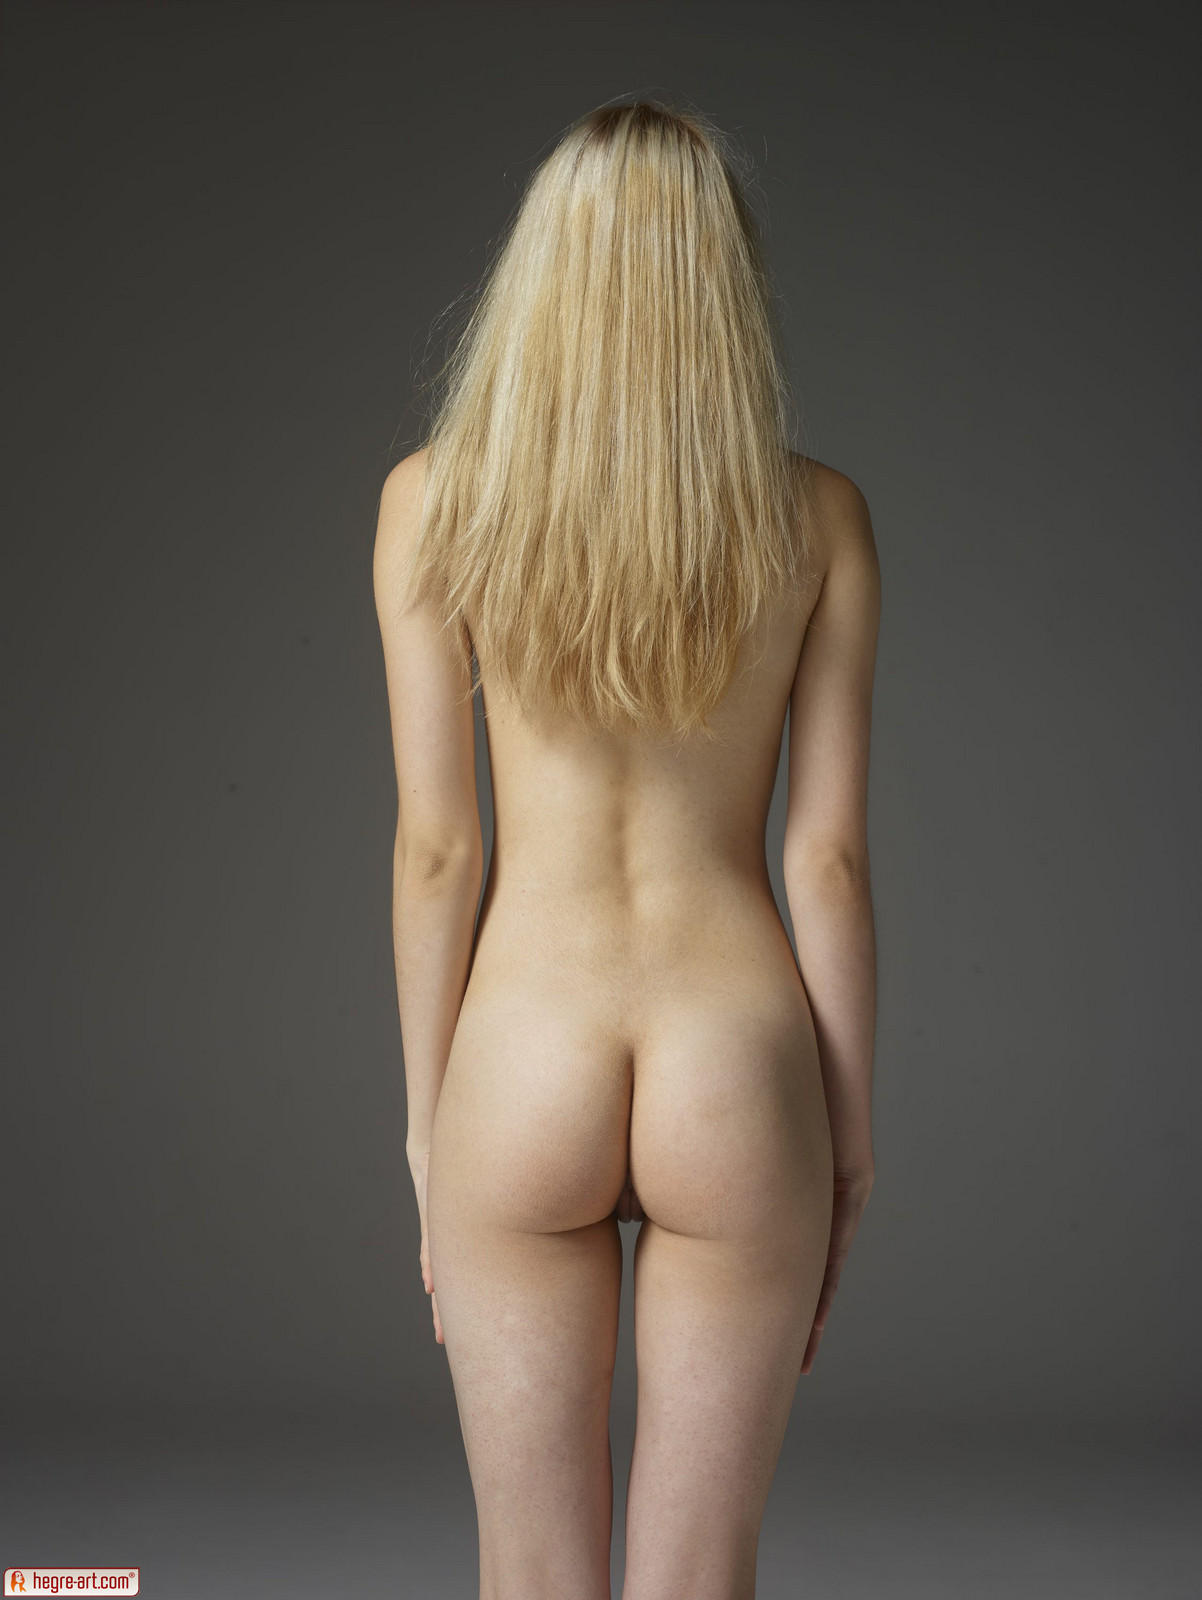 margot in booty pics by hegre art photos erotic